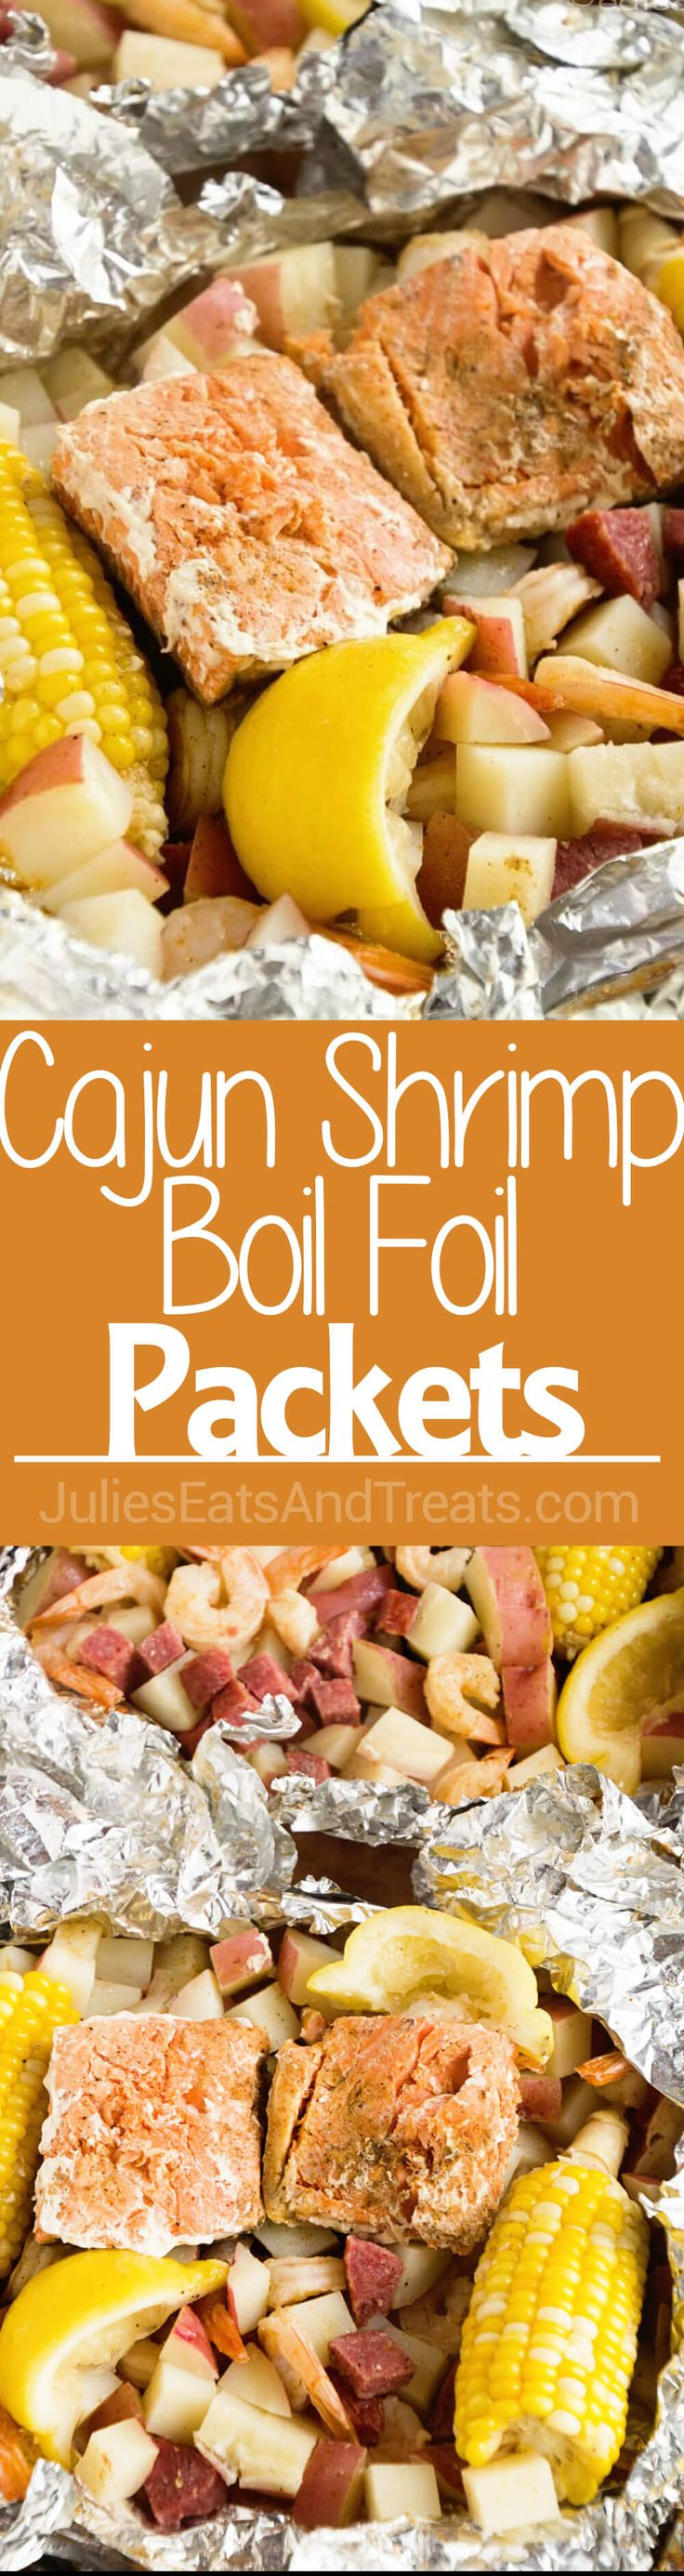 Cajun Shrimp Boil Foil Packets ~ Foil Packets Stuffed with Potatoes, Salmon, Shrimp, Summer Sausage, Corn and Seasoned with Cajun Seasoning! The Perfect Grilling Recipe! ~ http://www.julieseatsandtreats.com